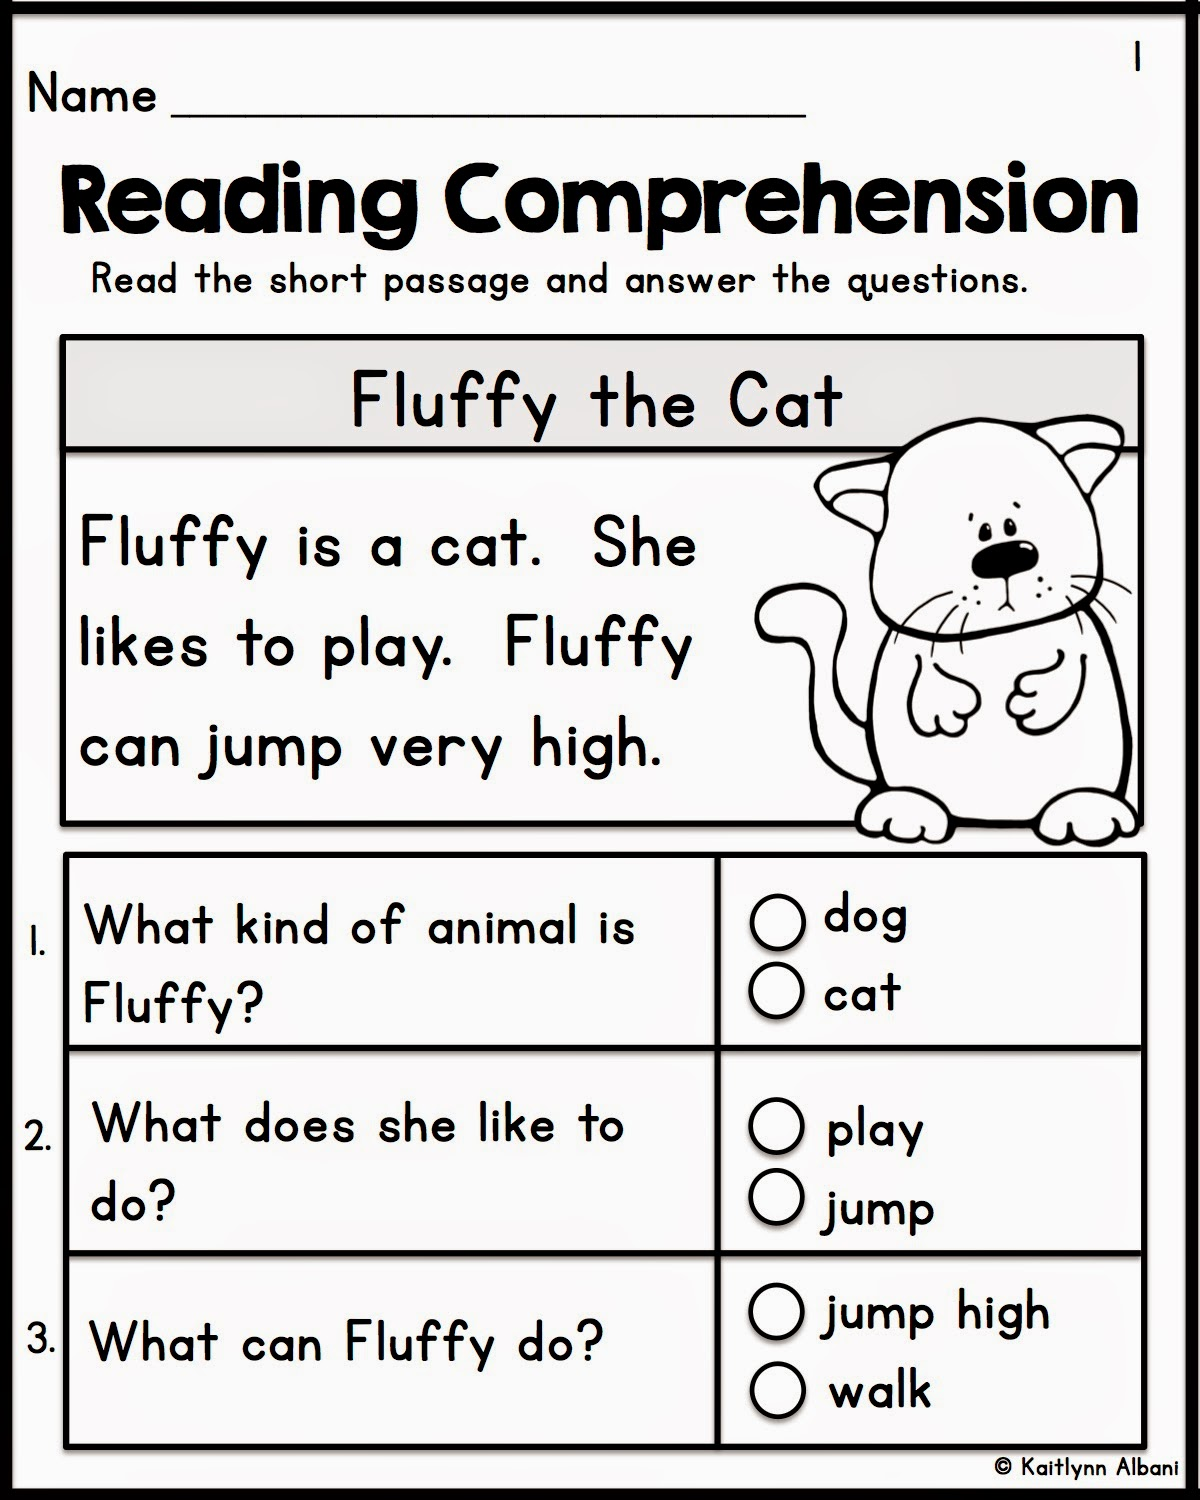 Reading Comprehension Worksheets Grade 1